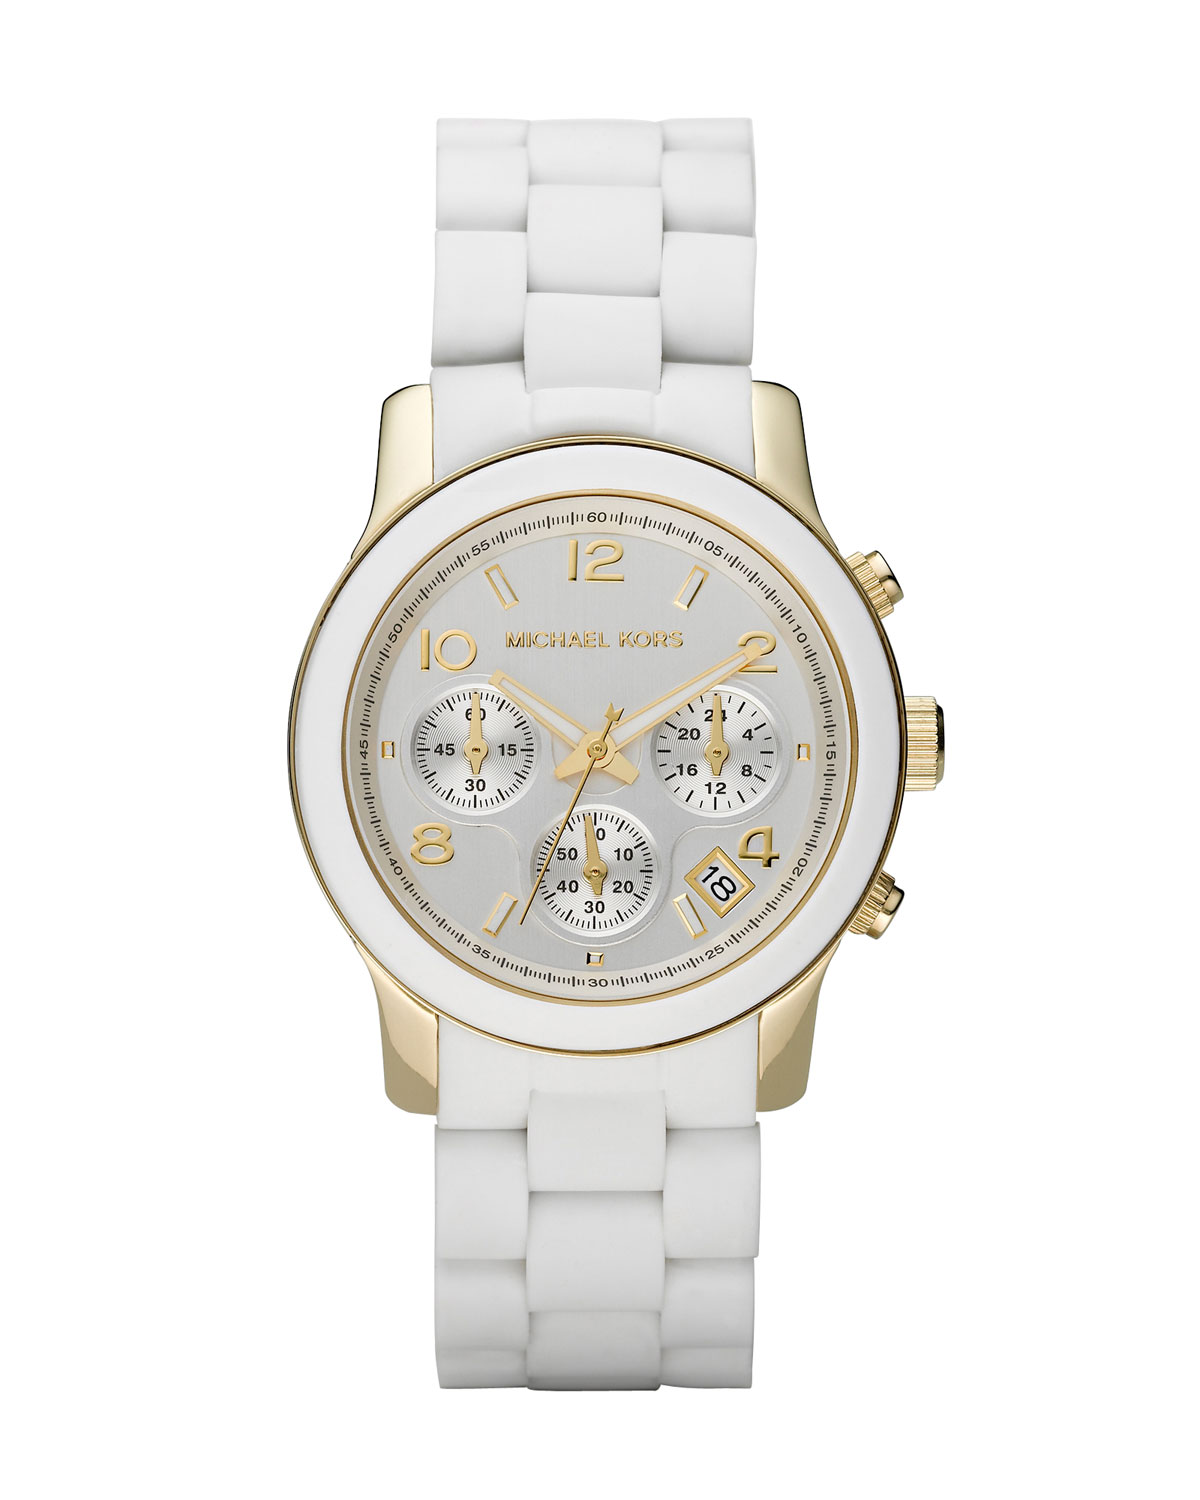 Lyst Michael Kors White Midsized Chronograph Watch In